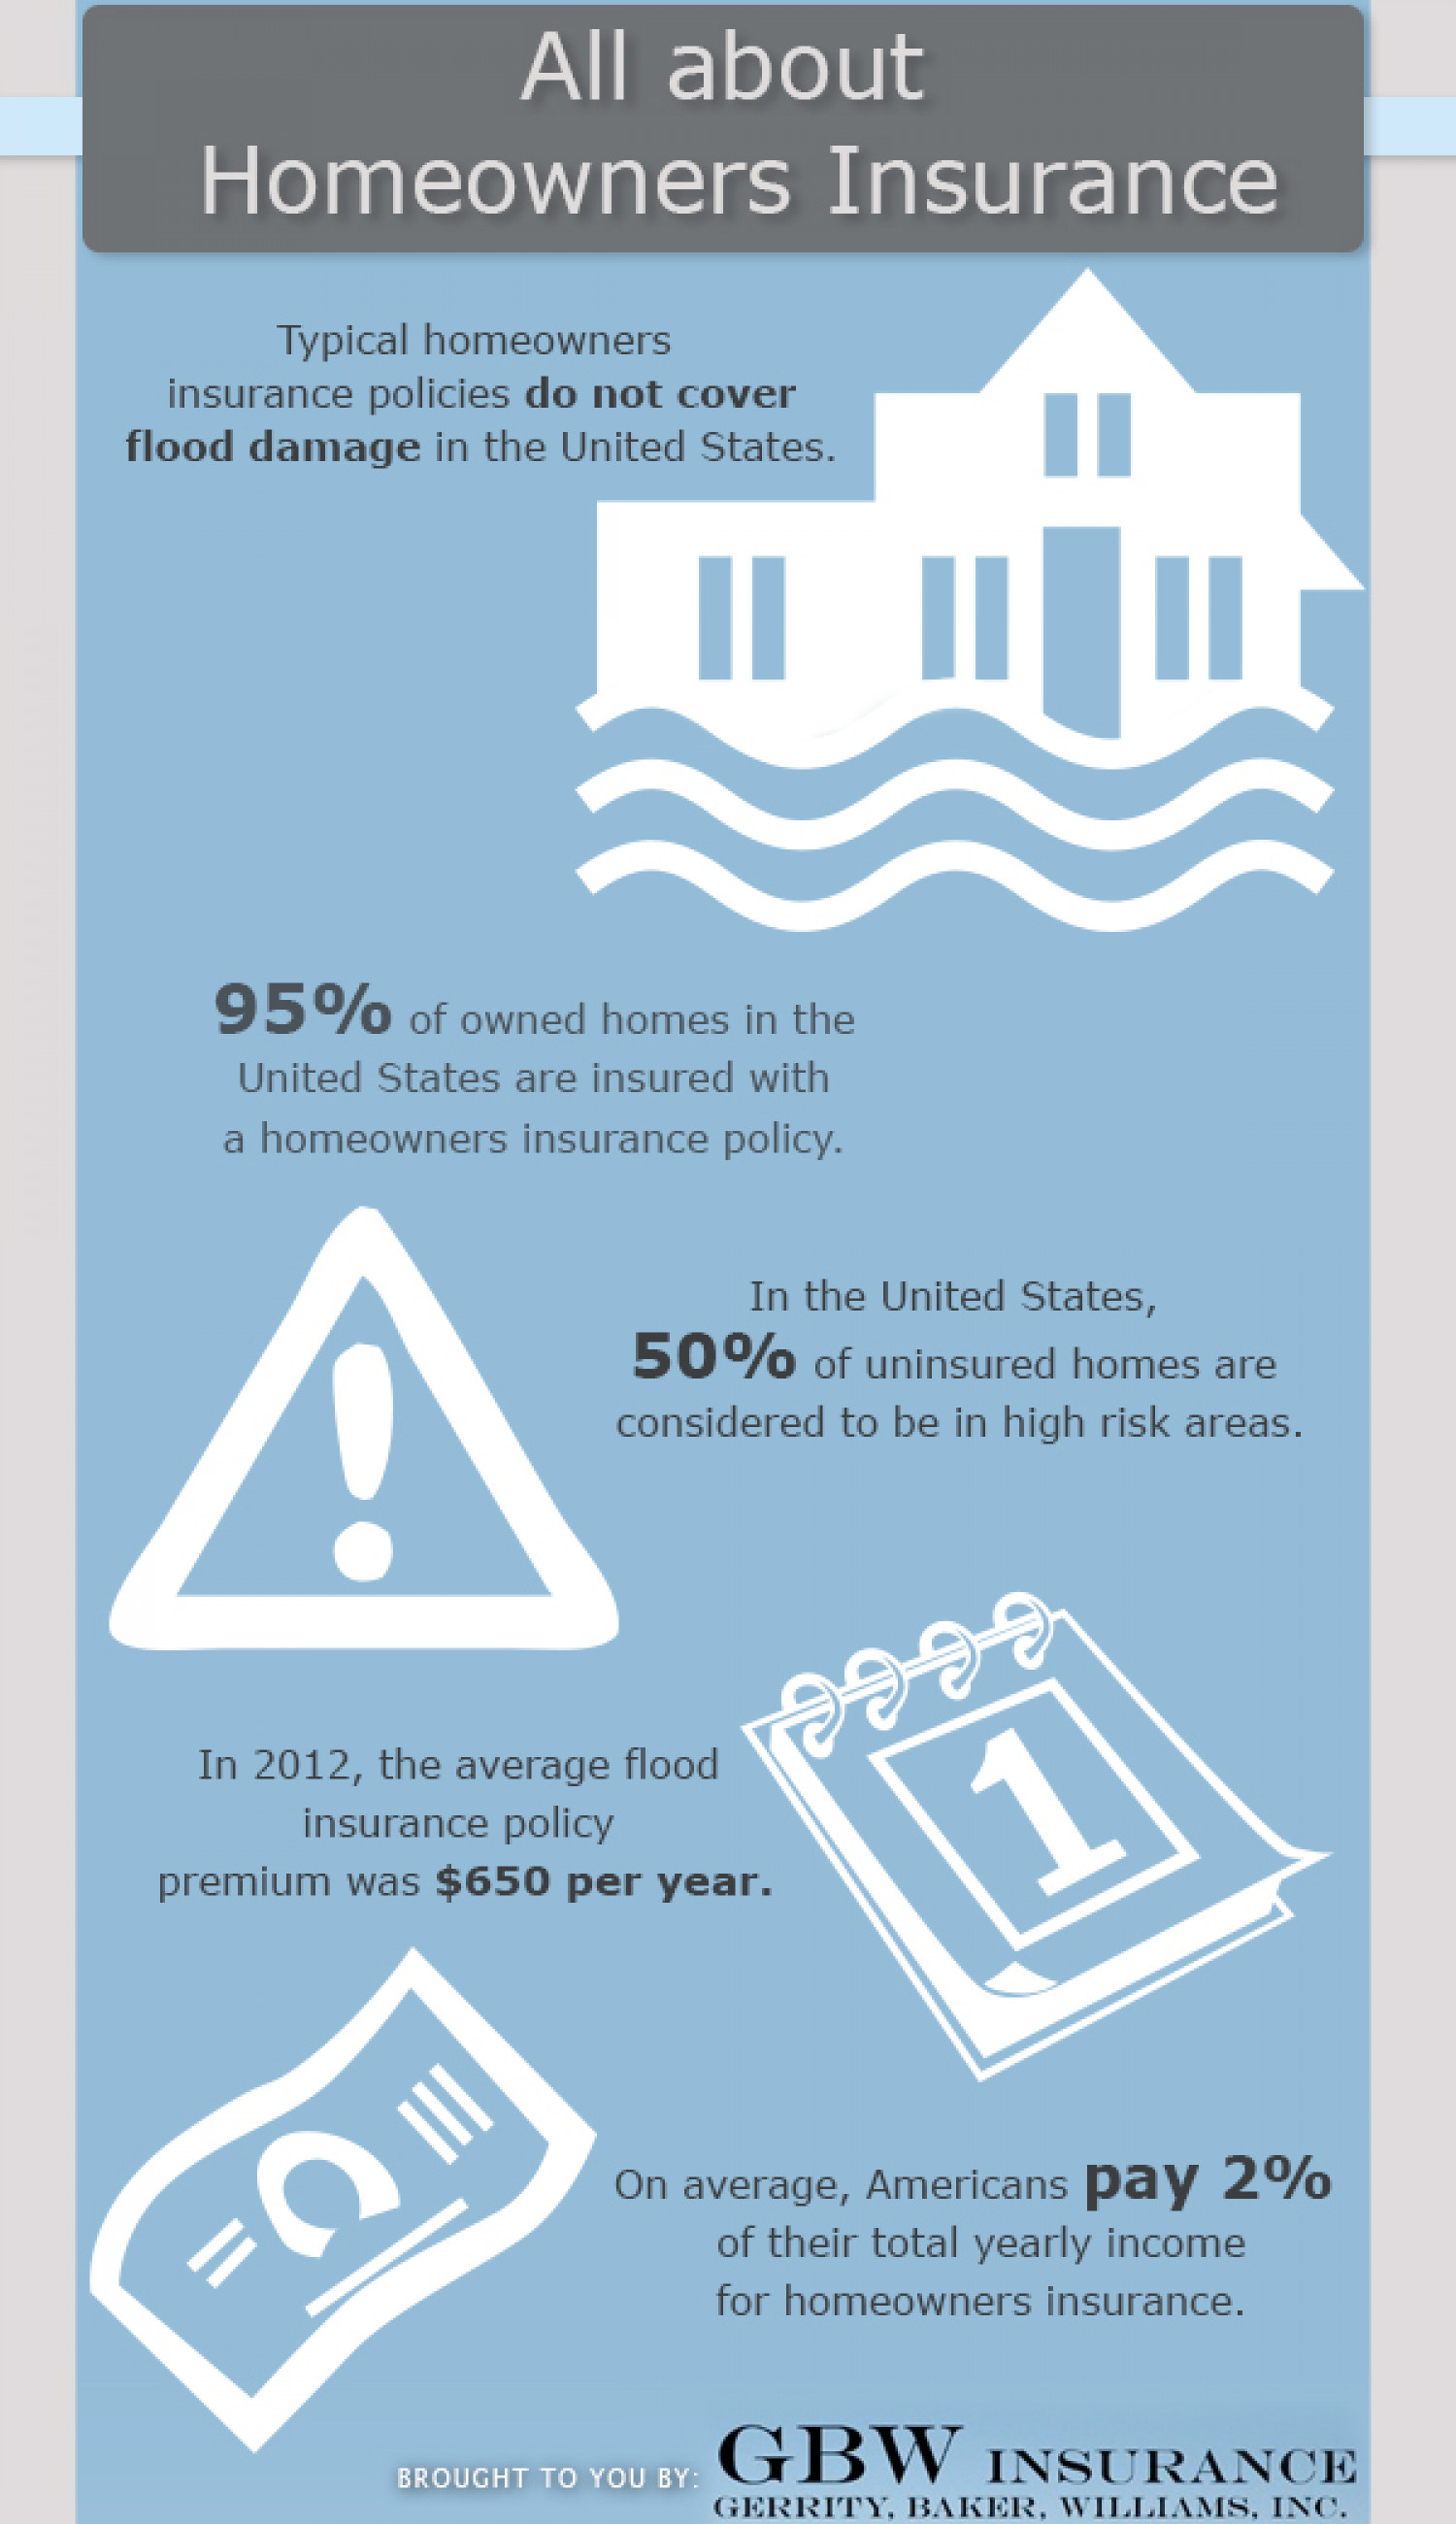 All About Homeowners Insurance Infographic